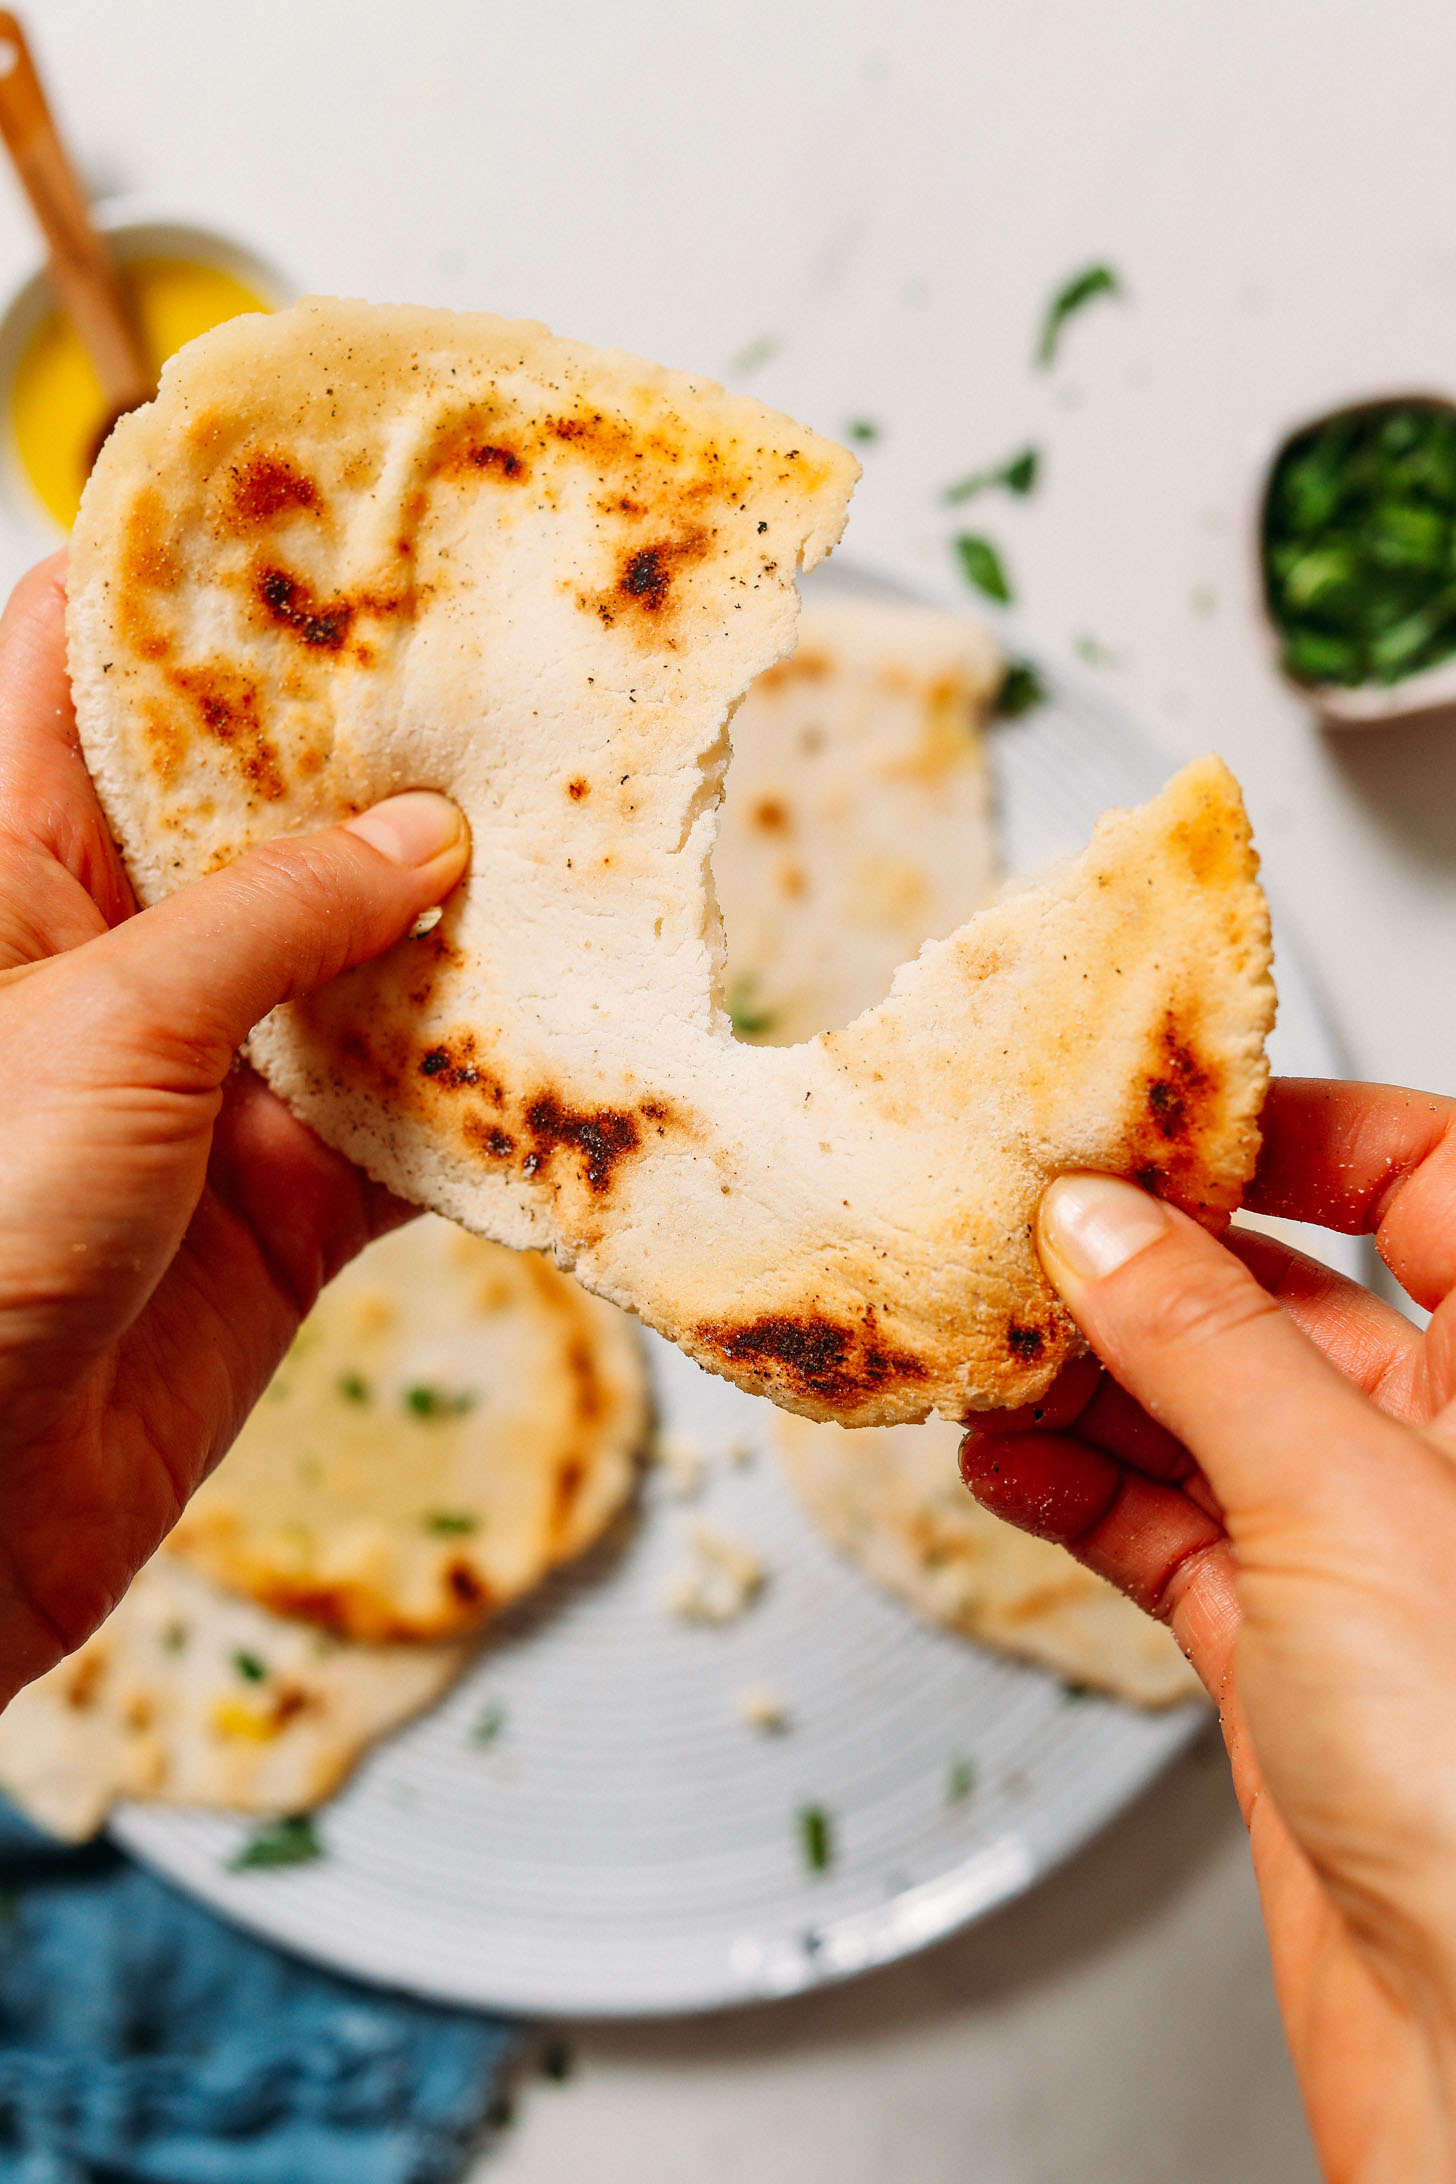 Pulling apart a piece of stretchy gluten free naan bread